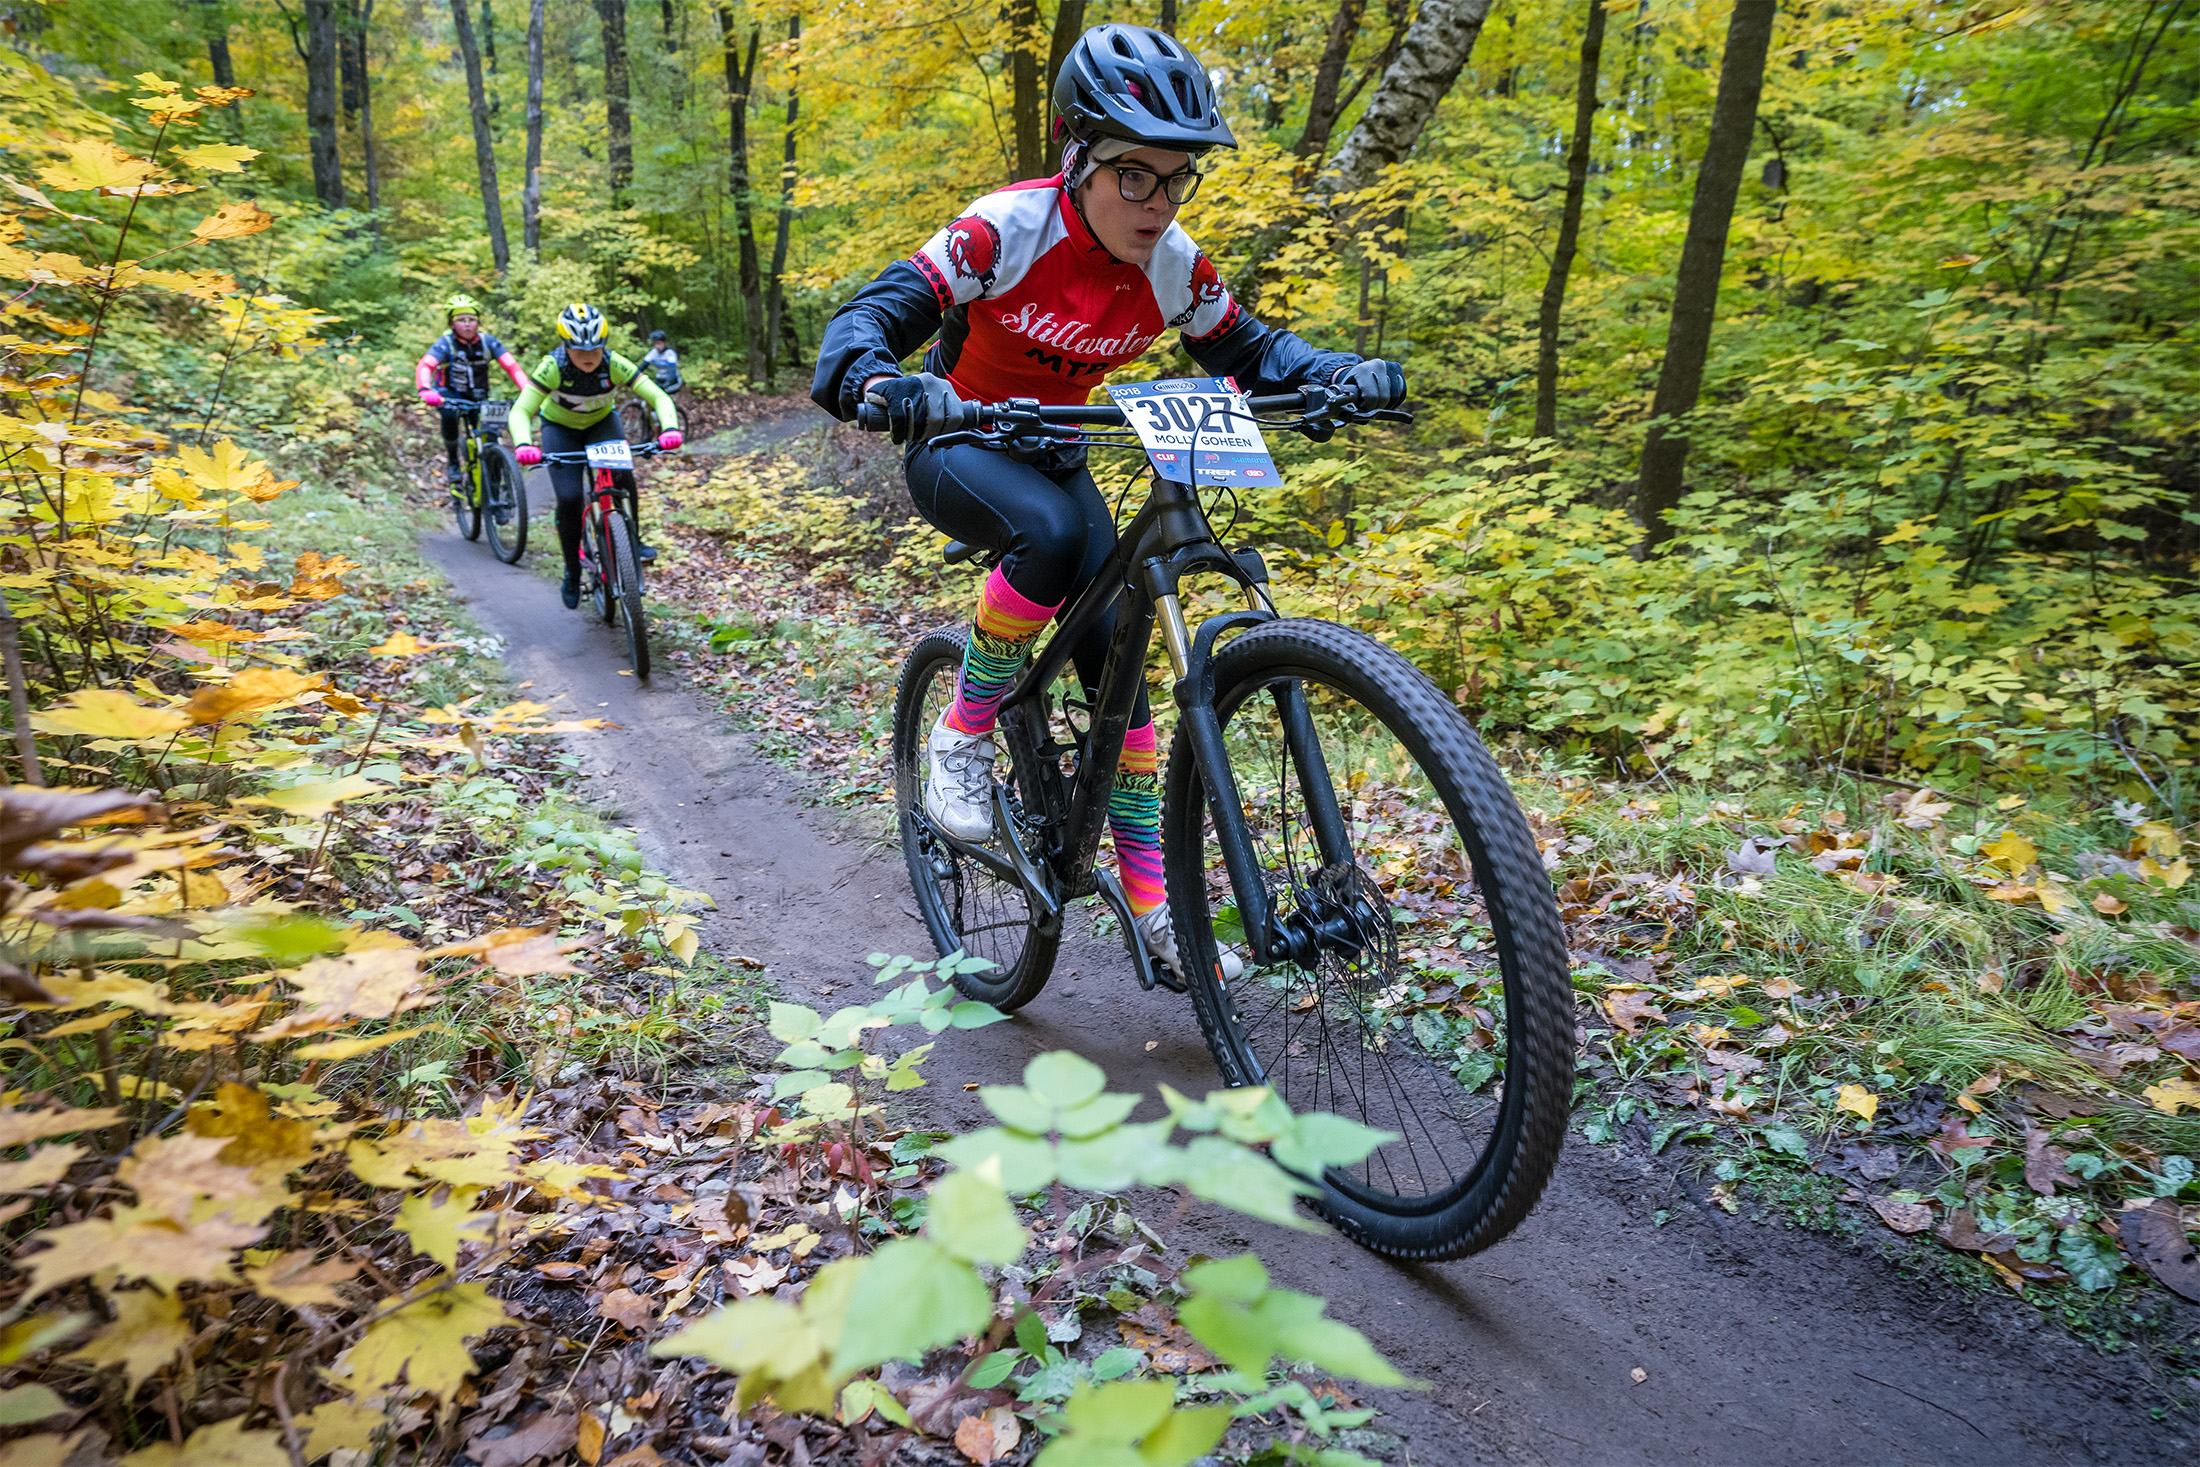 Four high-school cyclists racing each other on a woodland trail